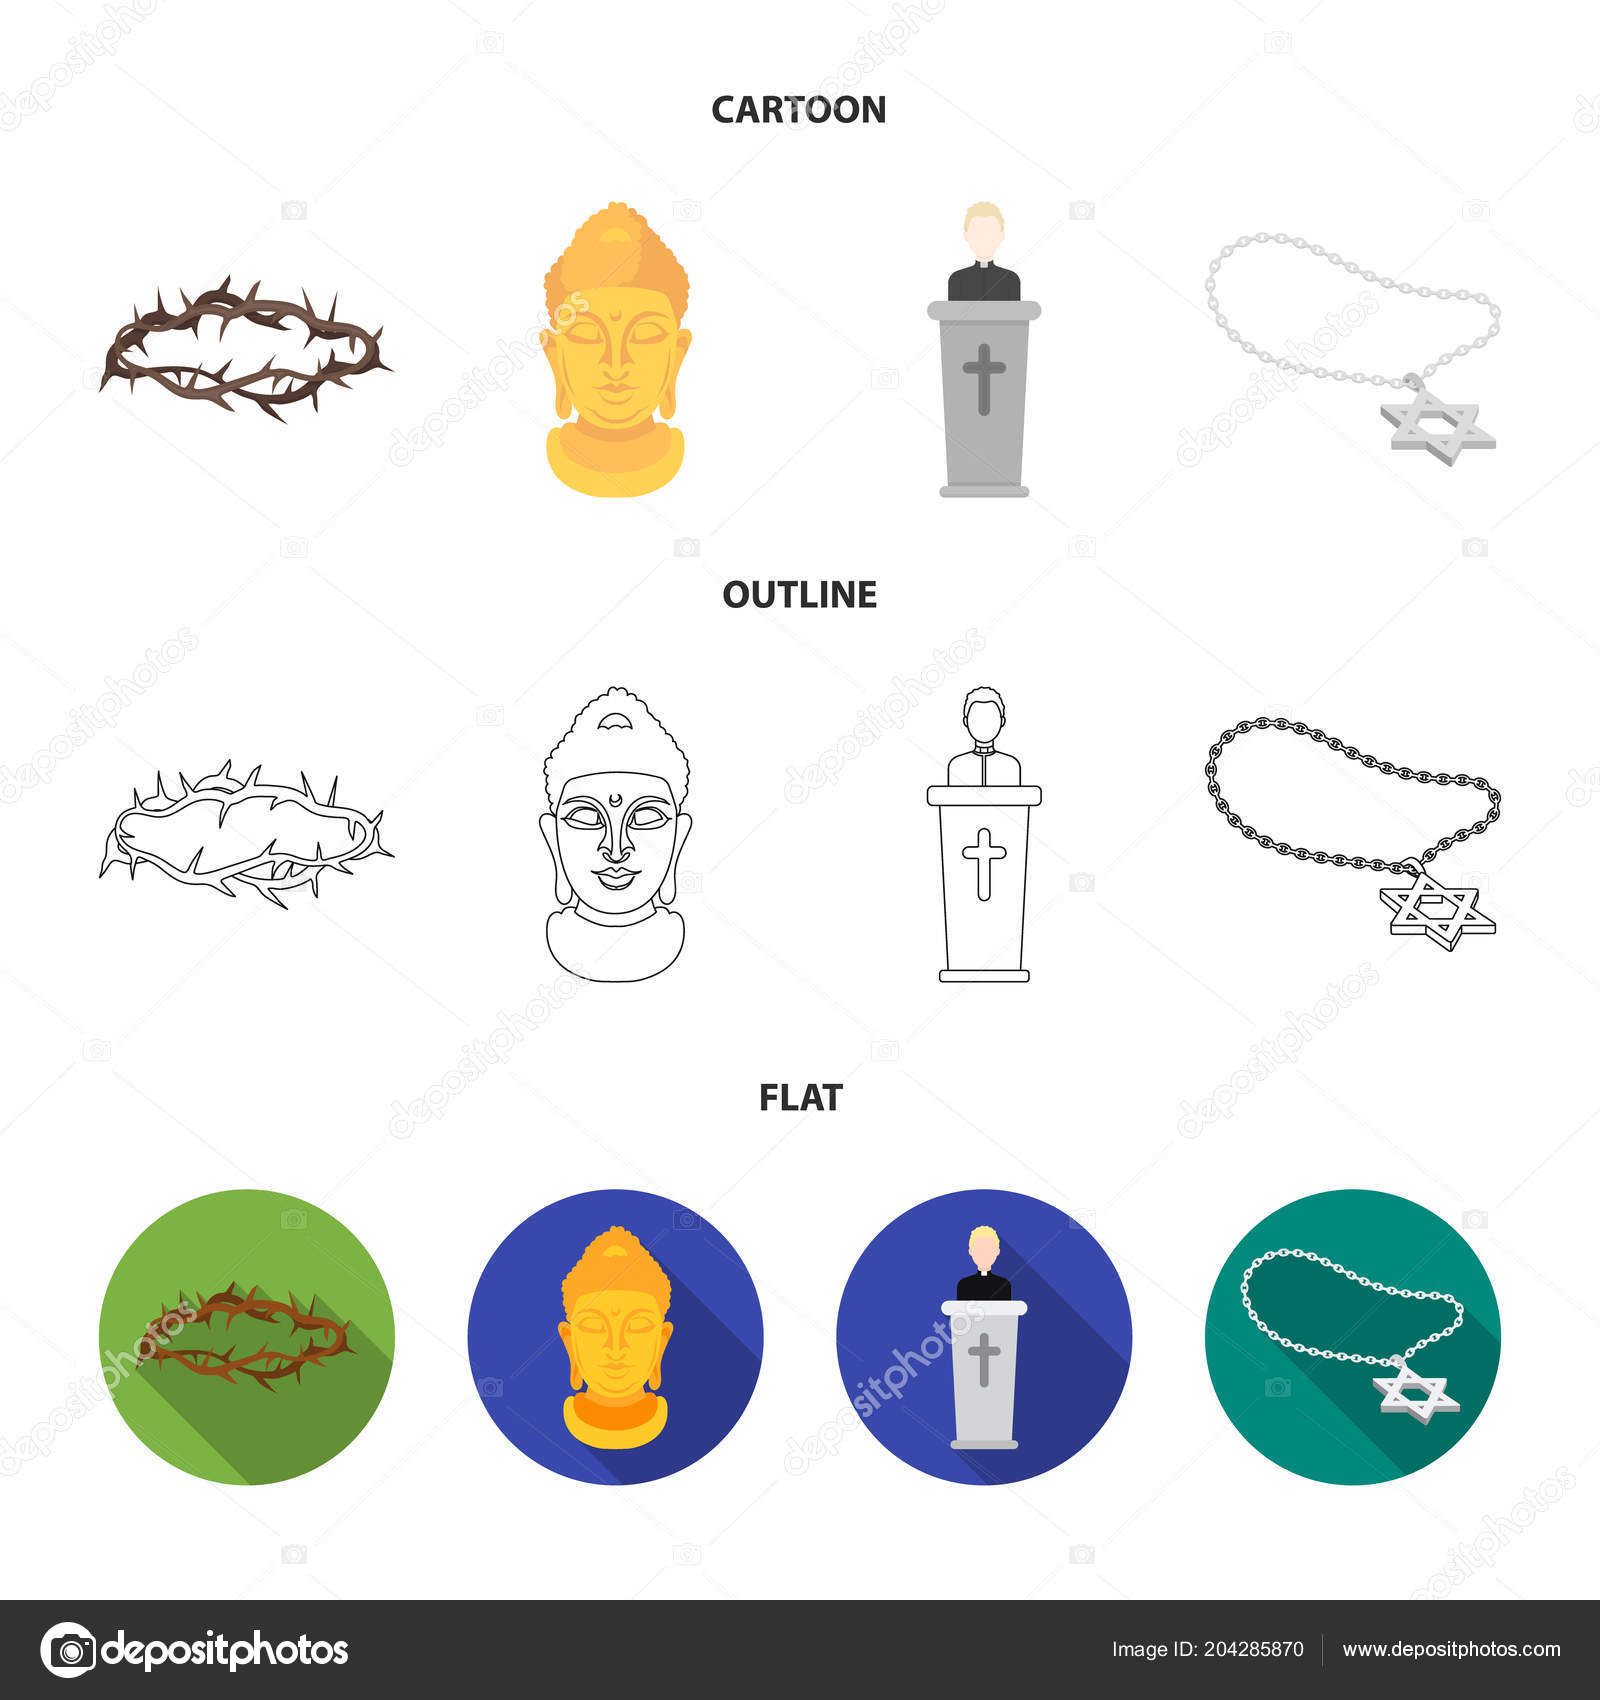 A Crown Of Thorns A Star Of David A Priest A Buddha Head Religion Set Collection Icons In Cartoon Outline Flat Style Vector Symbol Stock Illustration Web Stock Vector C Pandavector 204285870 Download a free preview or high quality adobe illustrator ai, eps, pdf and high resolution jpeg versions. depositphotos